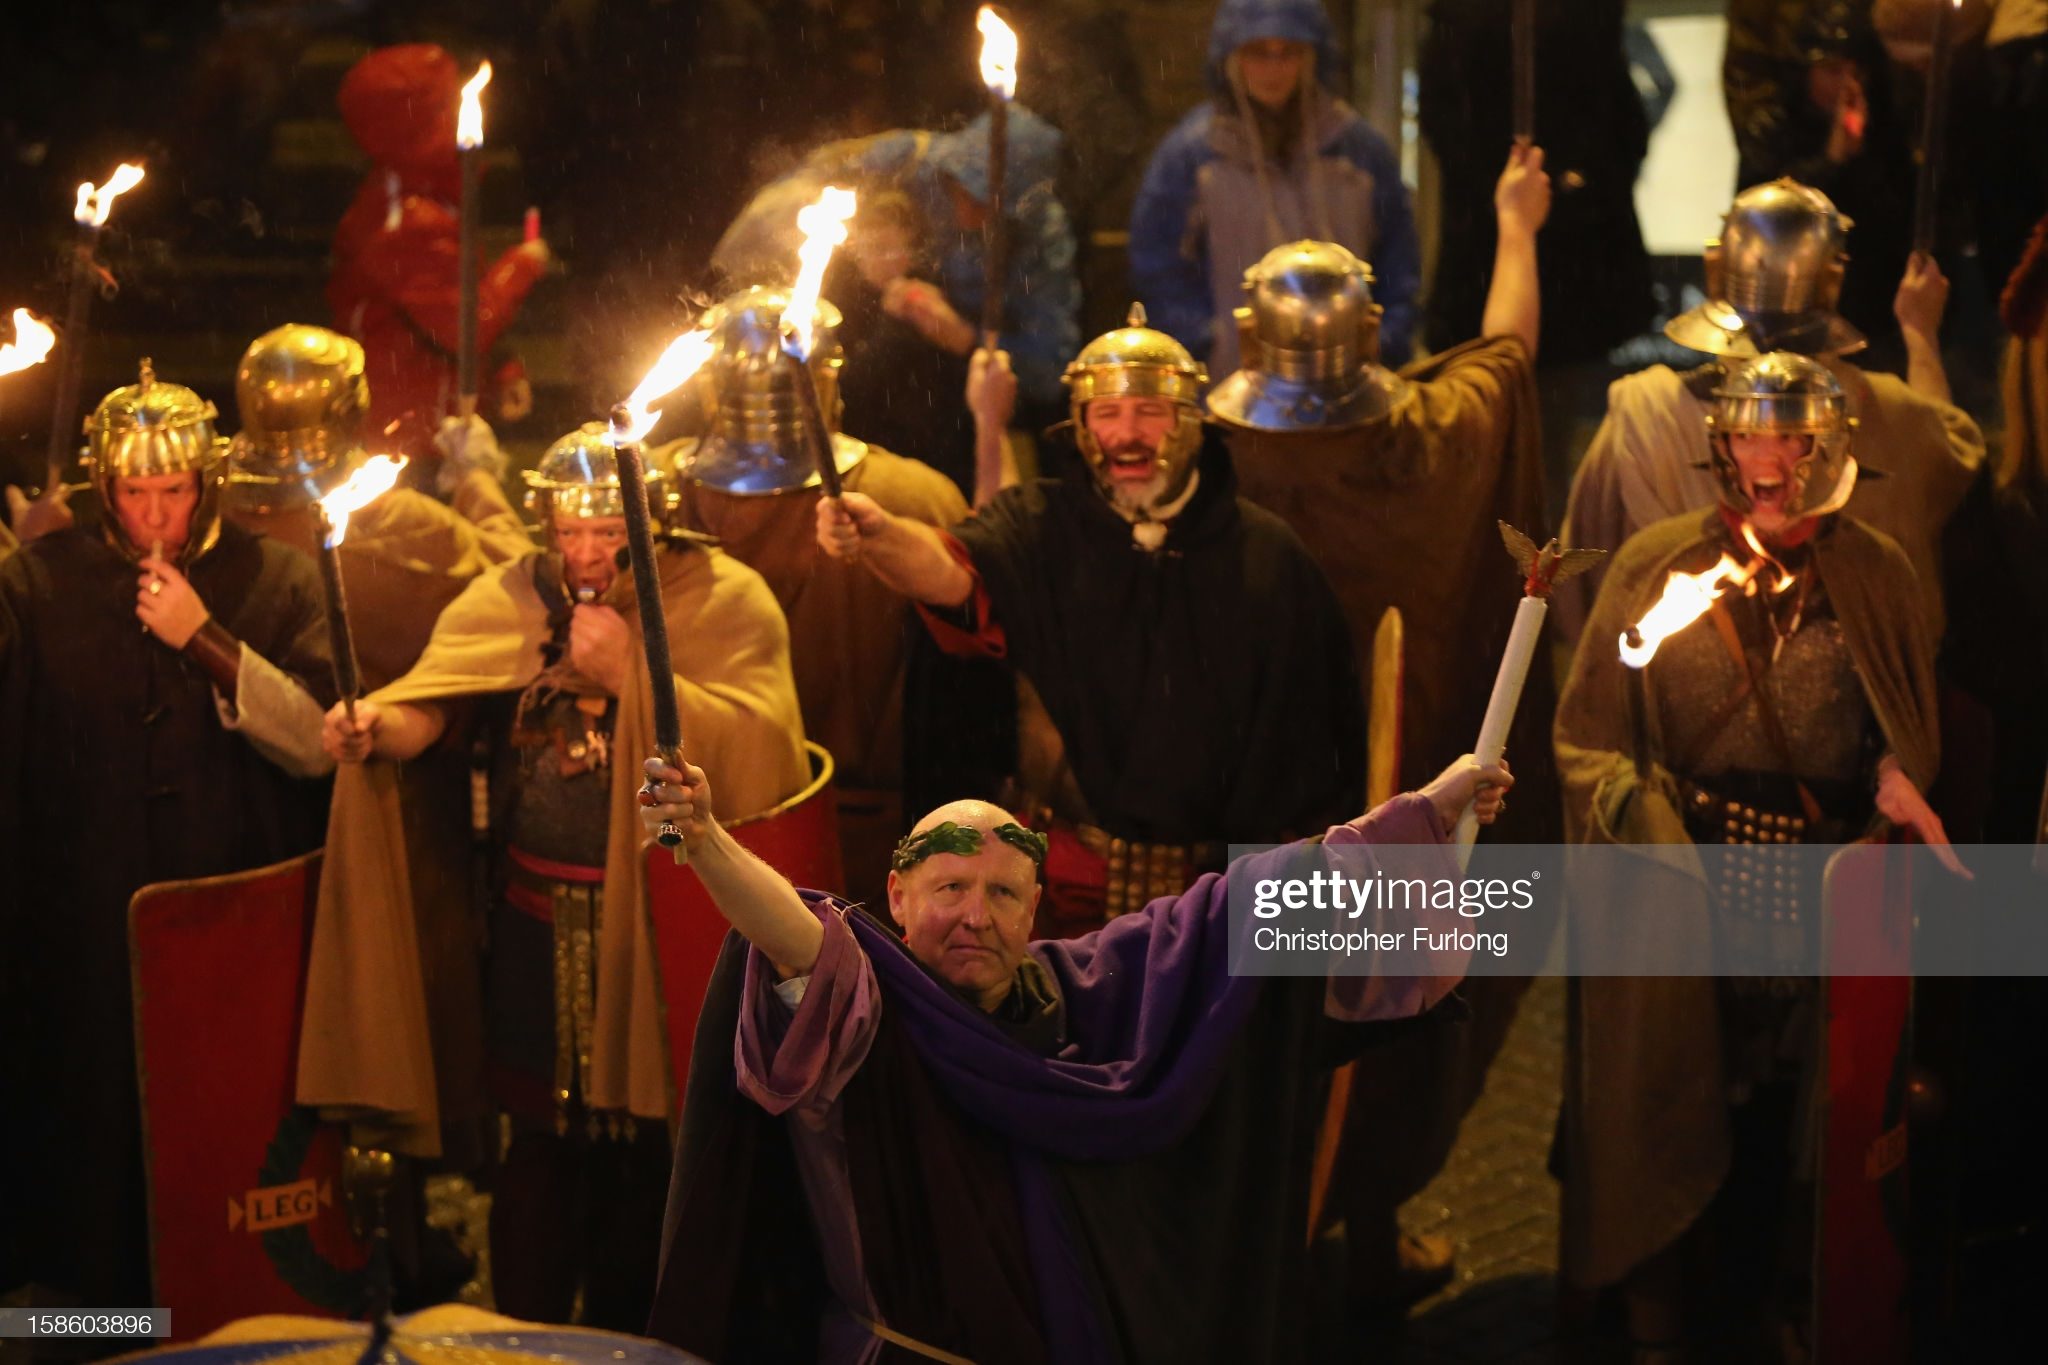 A Saturnalia celebration in England in 2012. CHRISTOPHER FURLONG/GETTY IMAGES